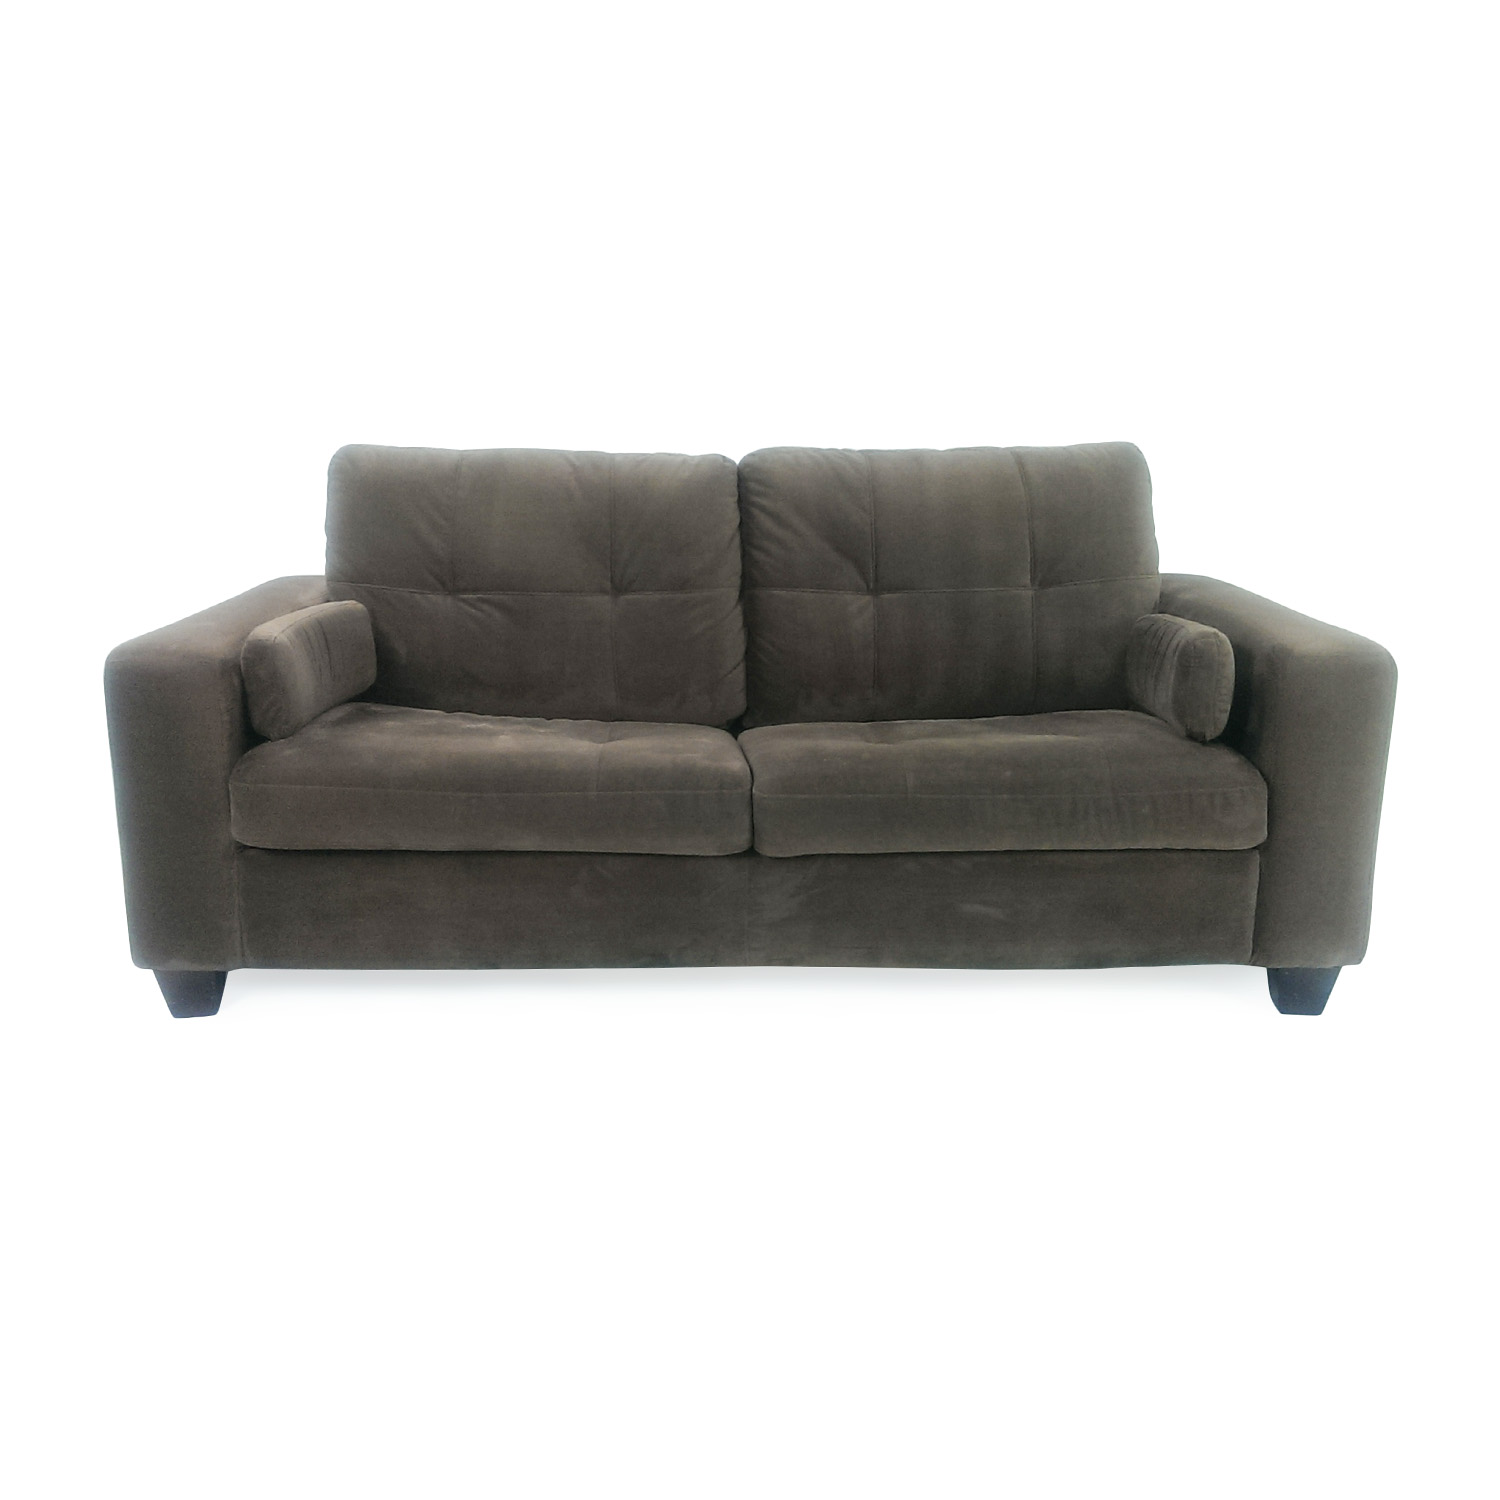 Secondhand sofa secondhand leather sofas teachfamilies org for Second hand sofas